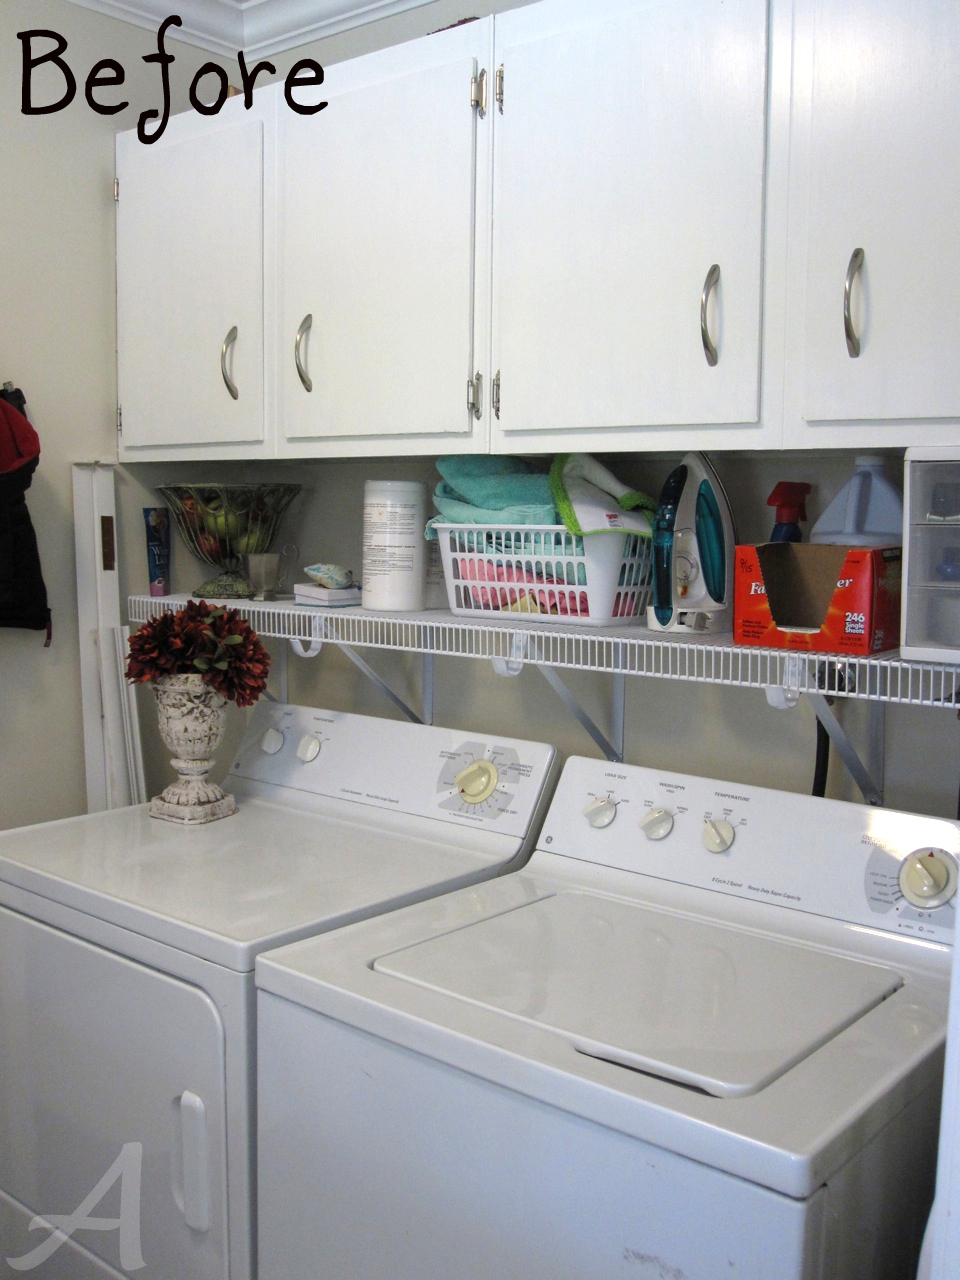 Stunning Laundry Room Organization Ideas For A Limited Space : Fabulous Modern Style Laundry Room Organization Ideas In White